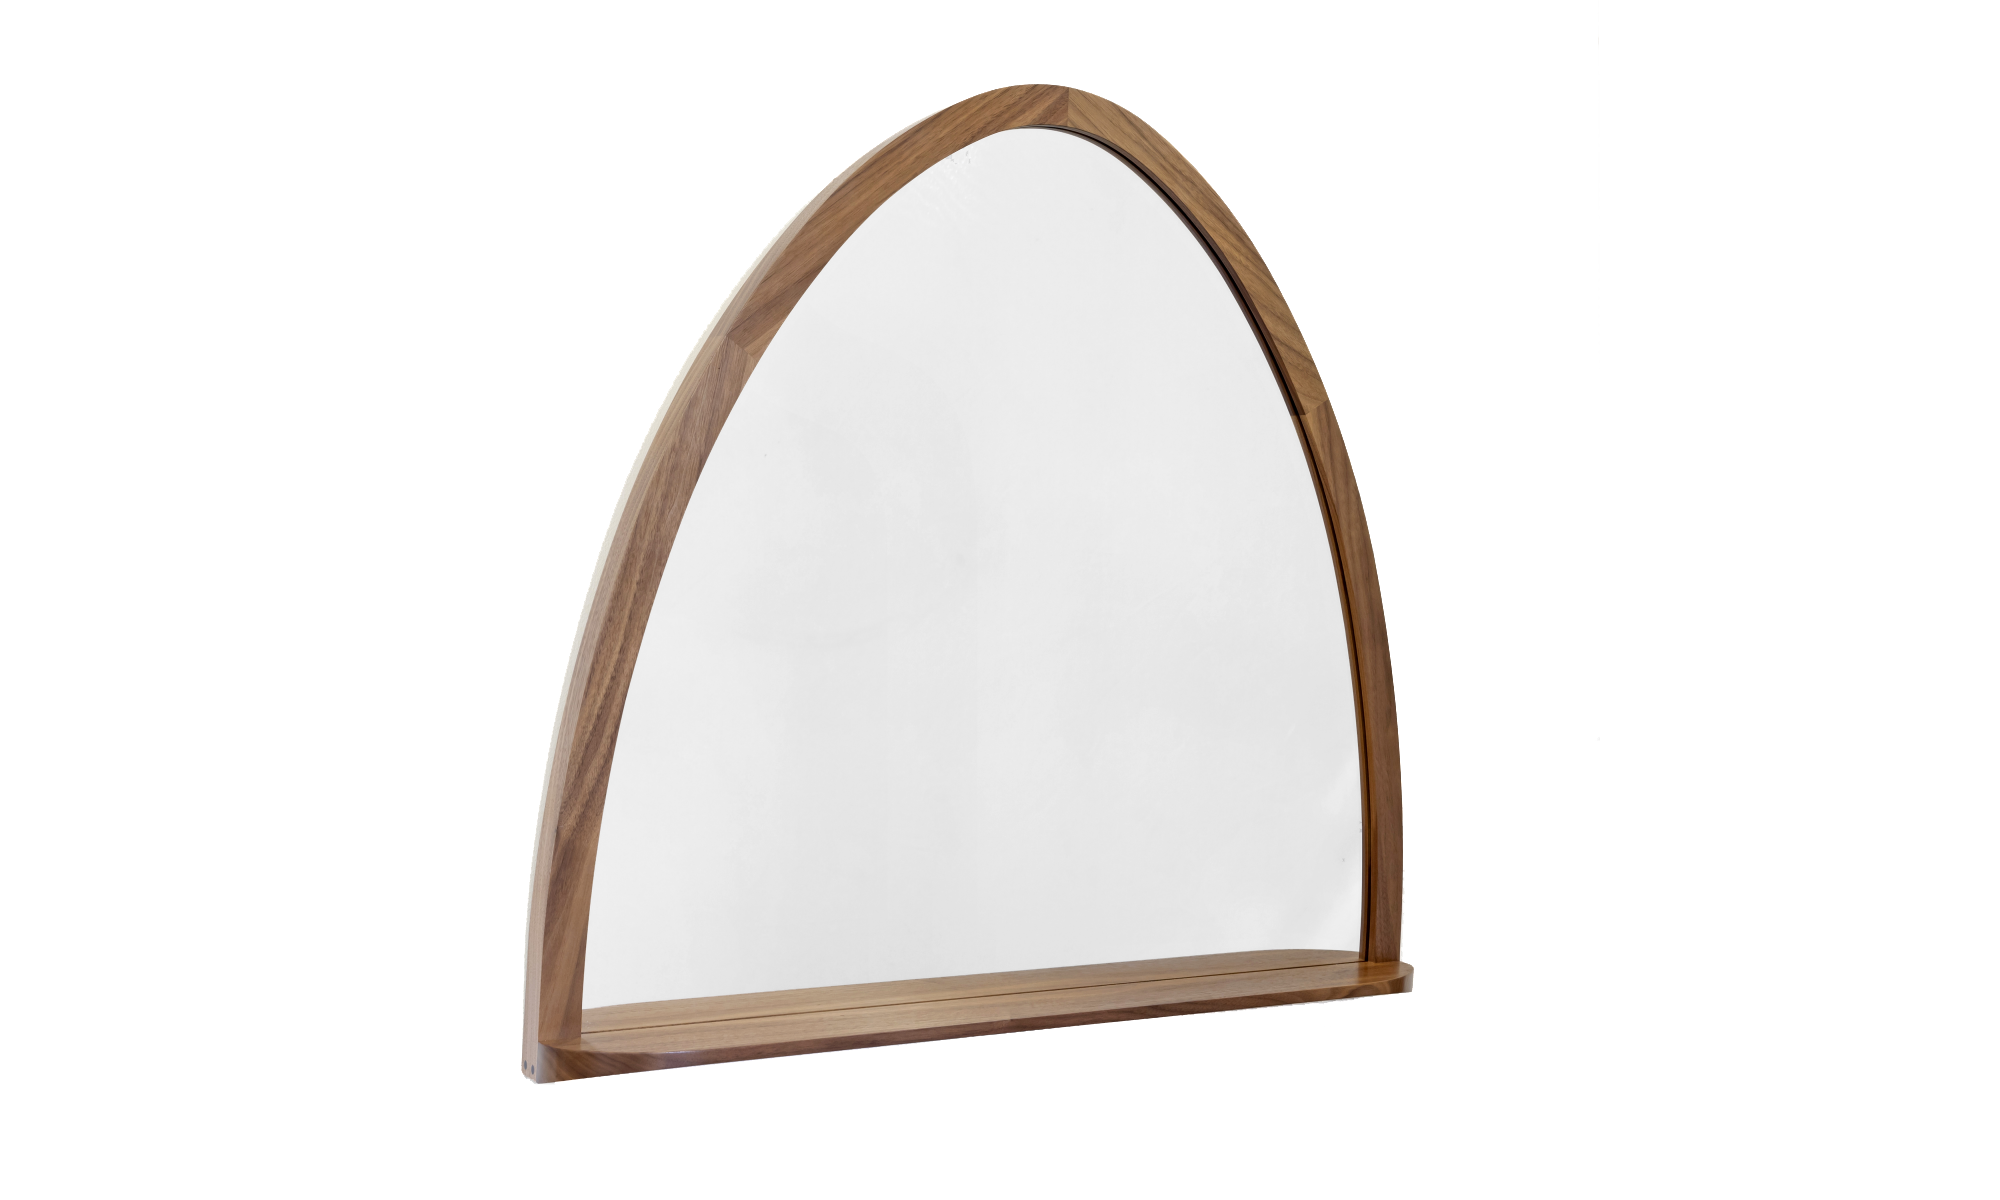 image of bespoke handcrafted walnut mirror